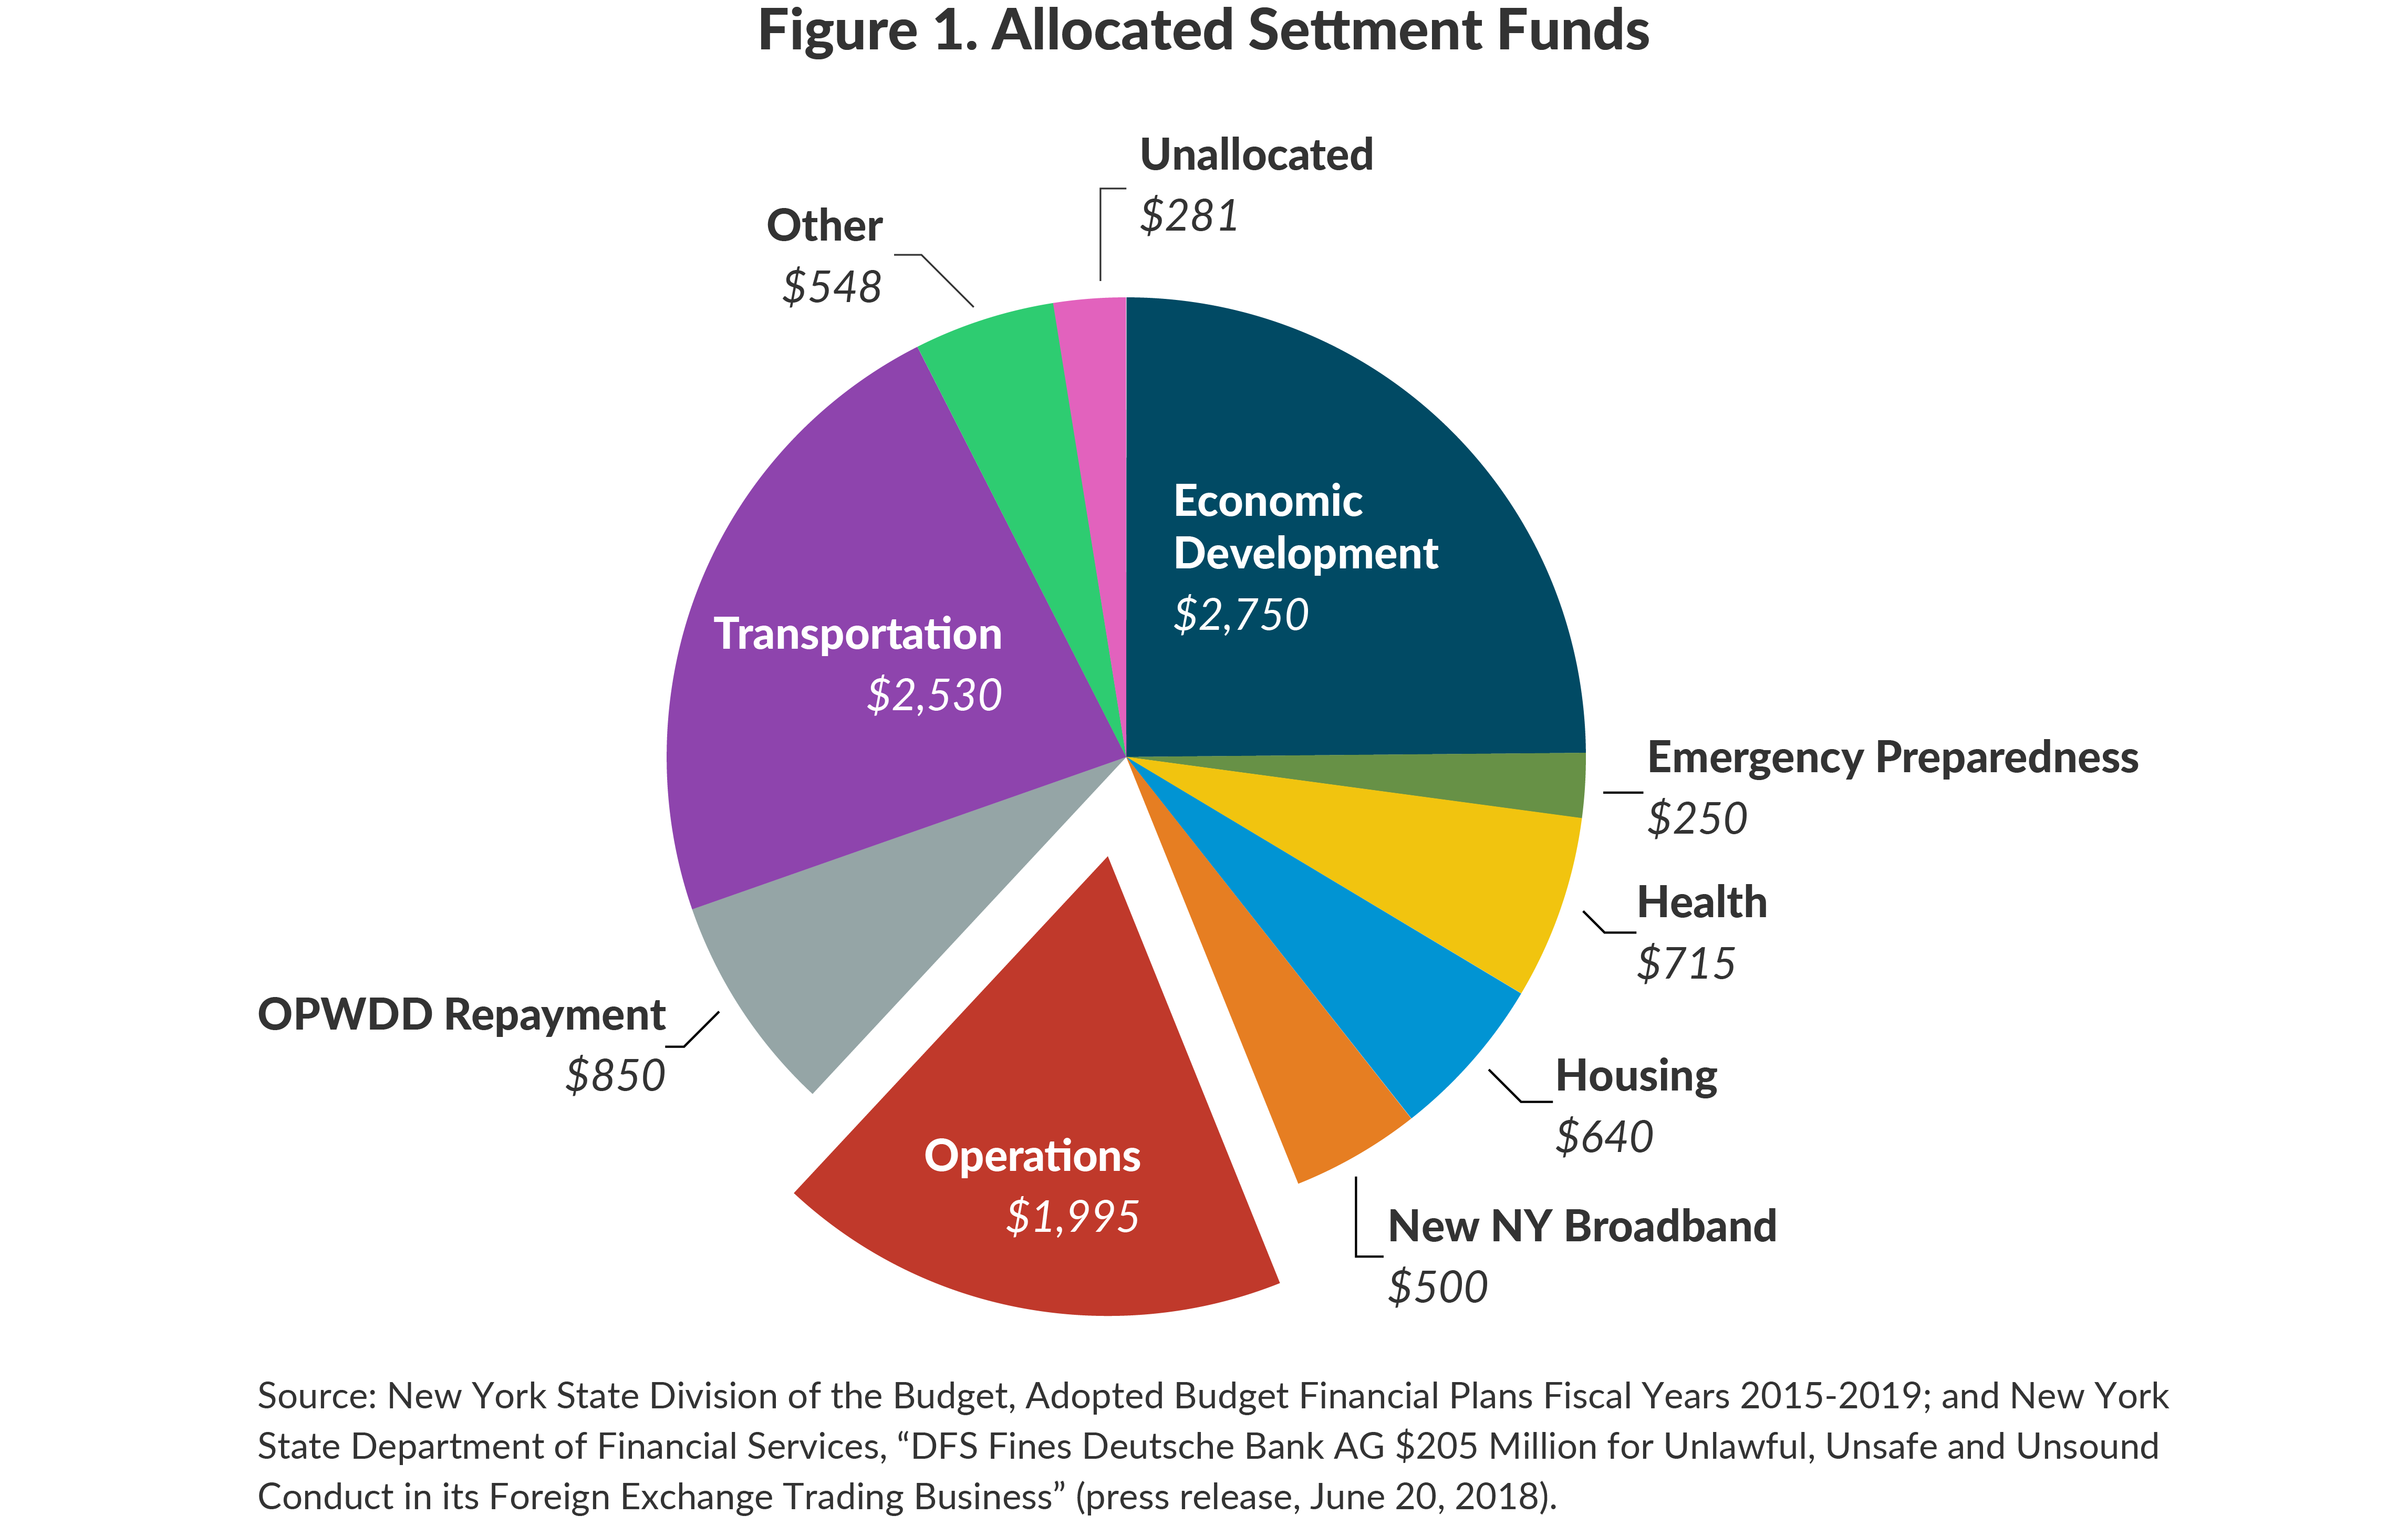 Figure 1: Allocated Settment Funds